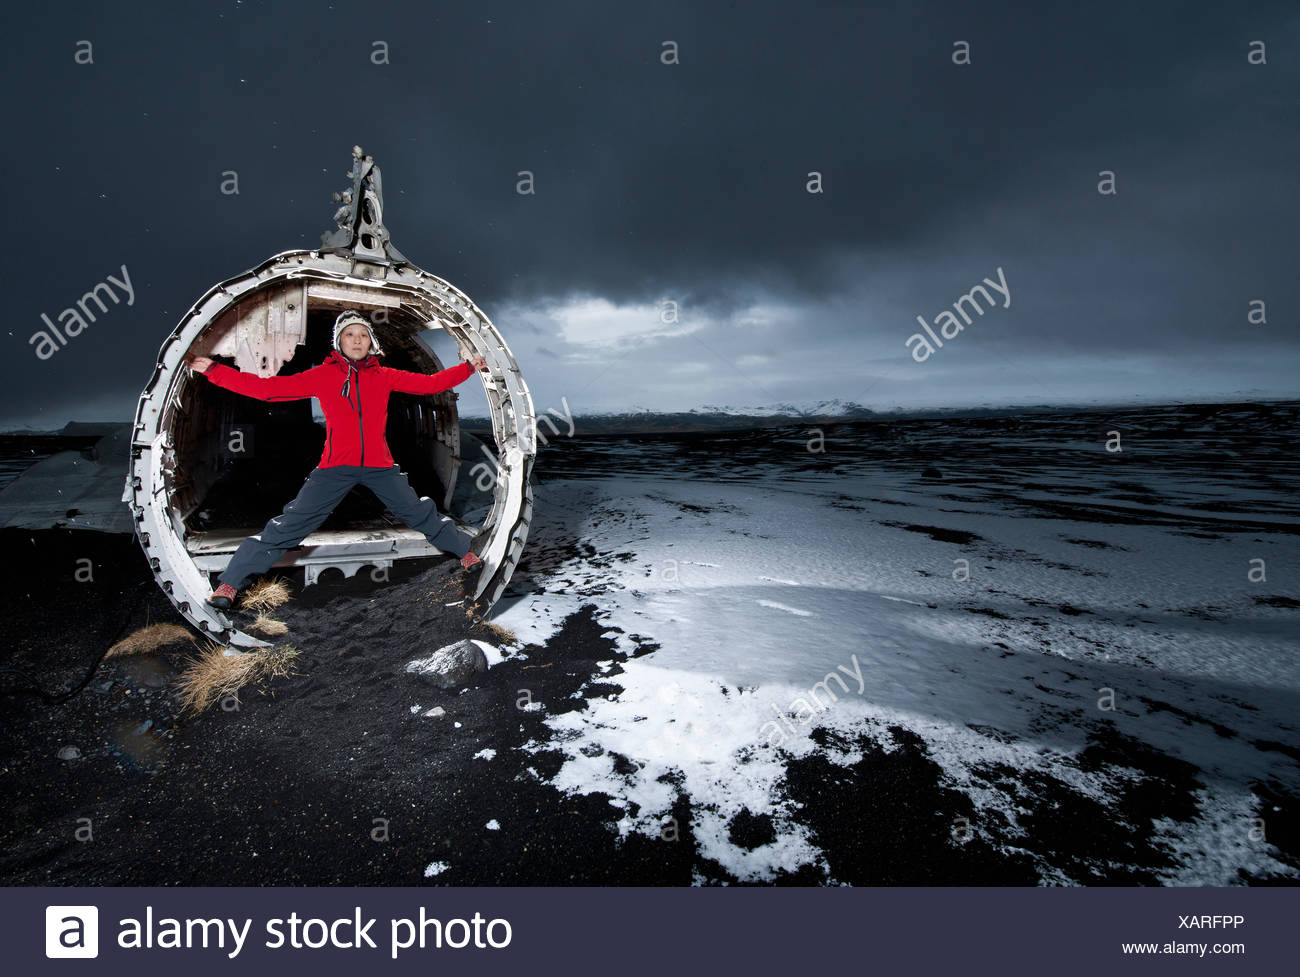 Hiker standing in airplane wreck in snow - Stock Image